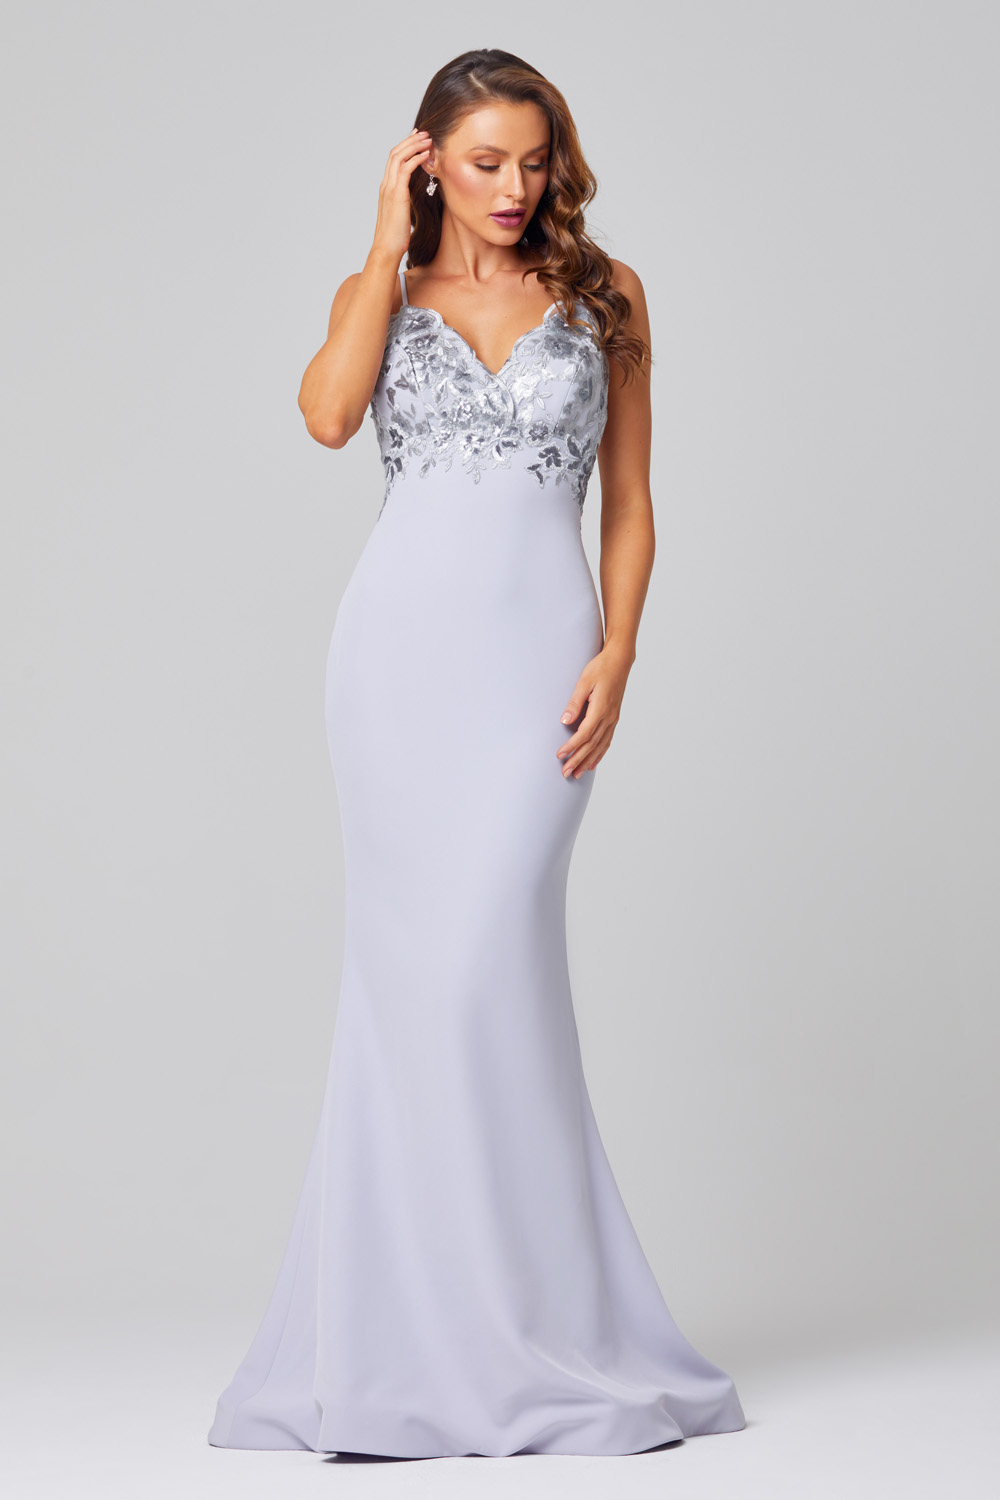 Pippa Low Back Sequin Lace Formal Dress - PO888